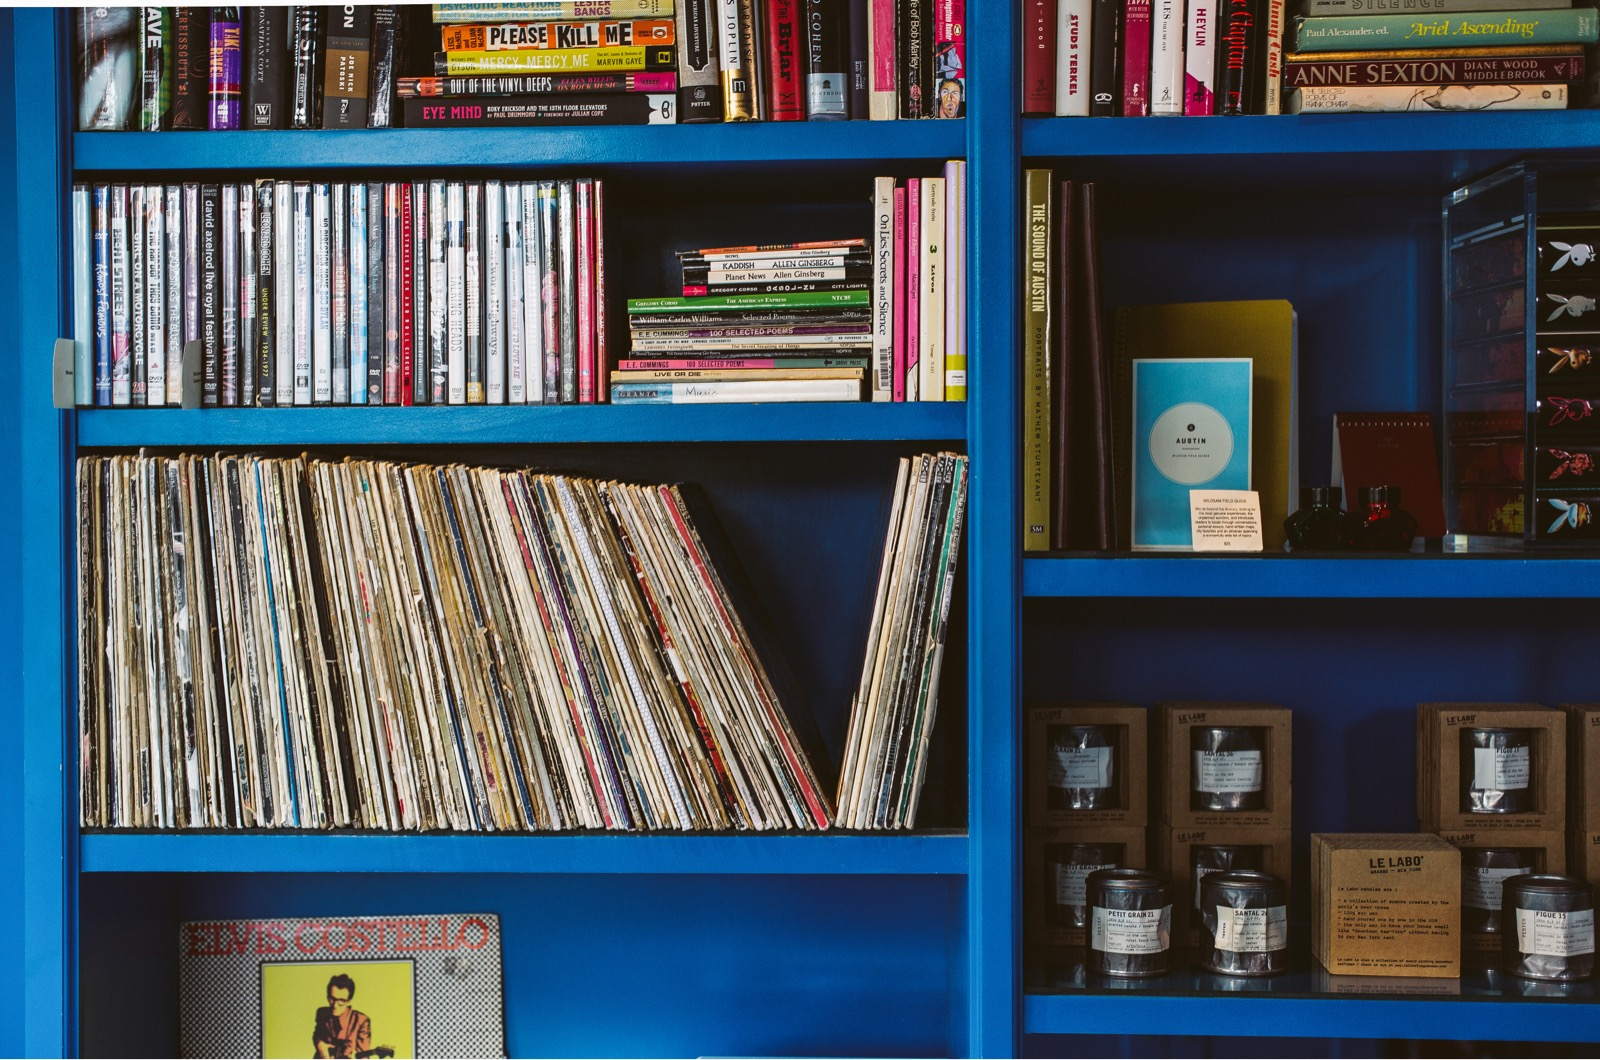 Library shelf with records, books, movies, candles